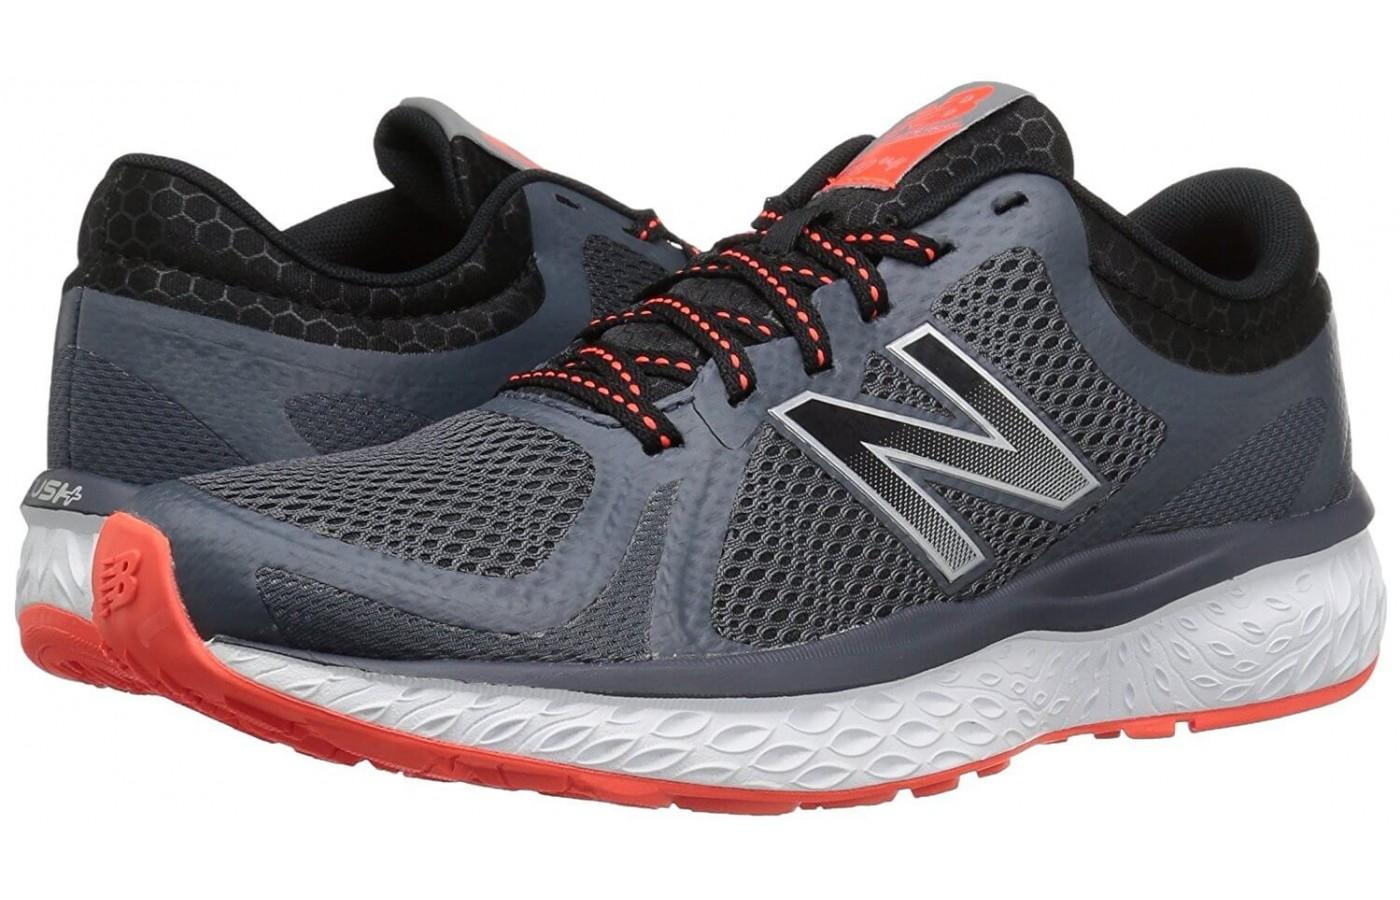 The New Balance 720 V4 is available in wide widths